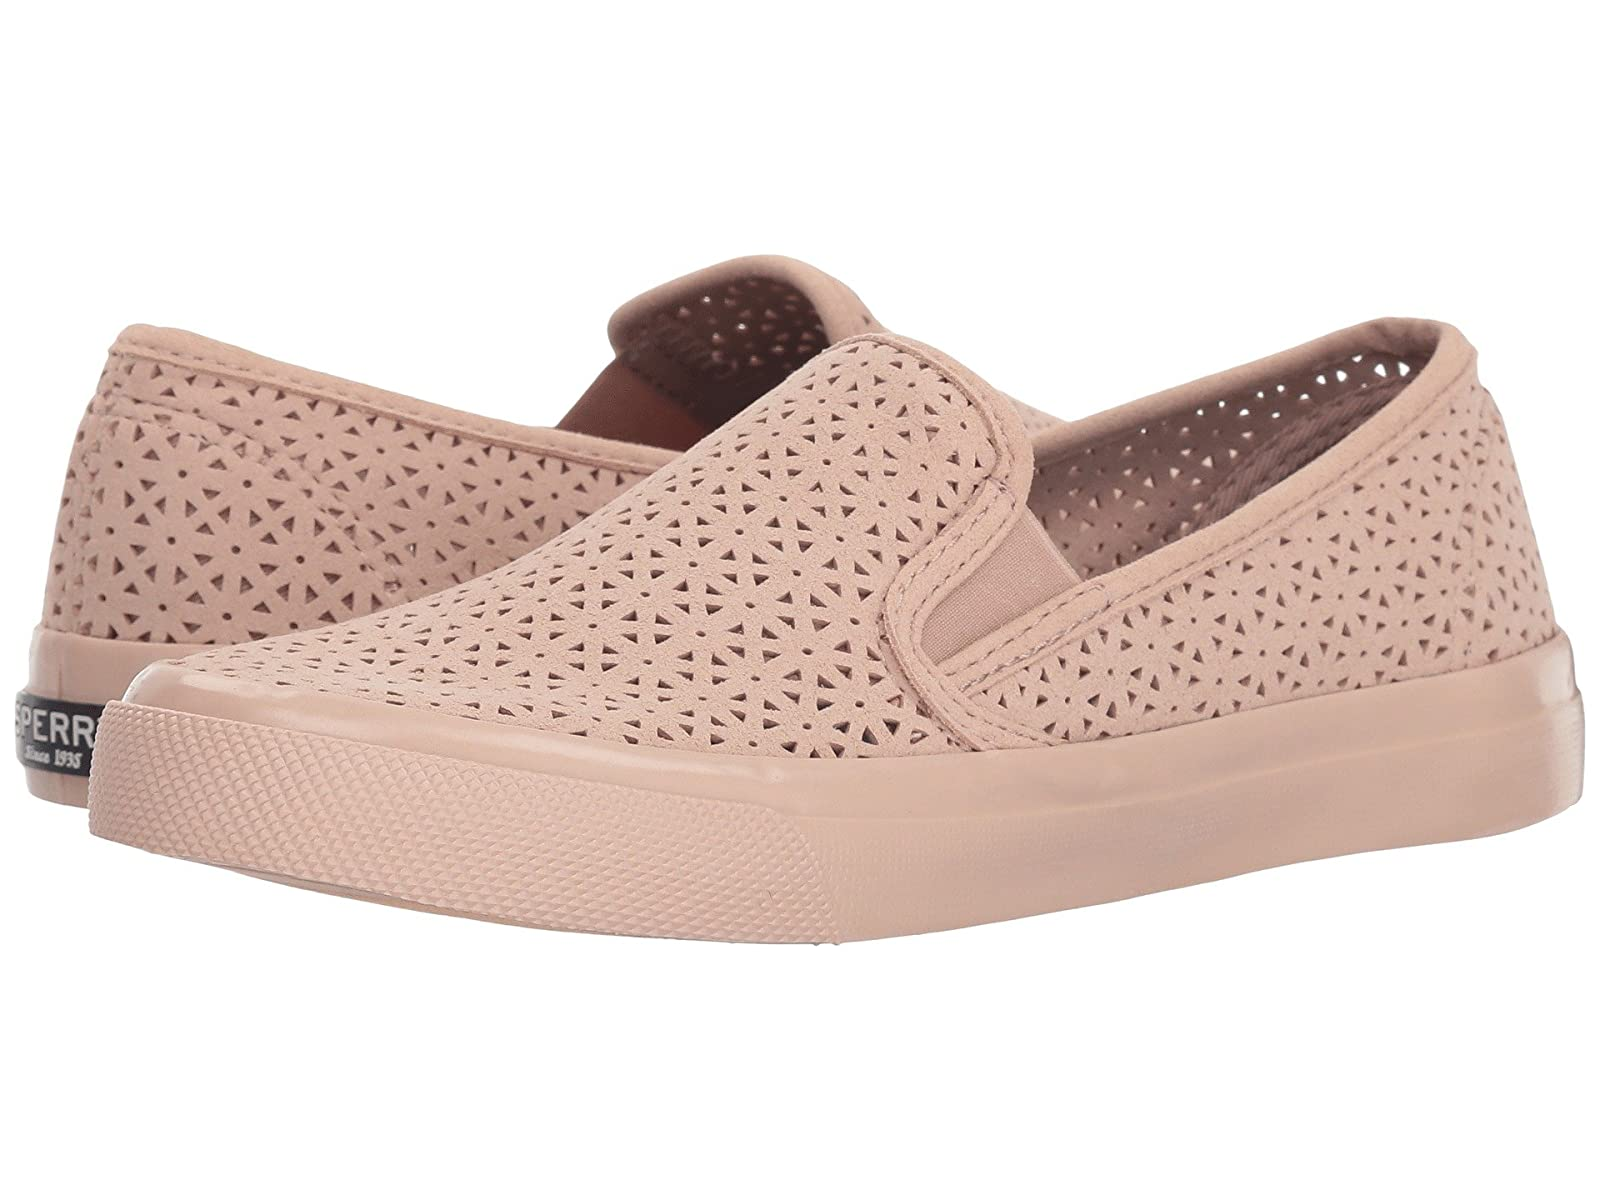 Sperry Seaside Nautical PerfAtmospheric grades have affordable shoes